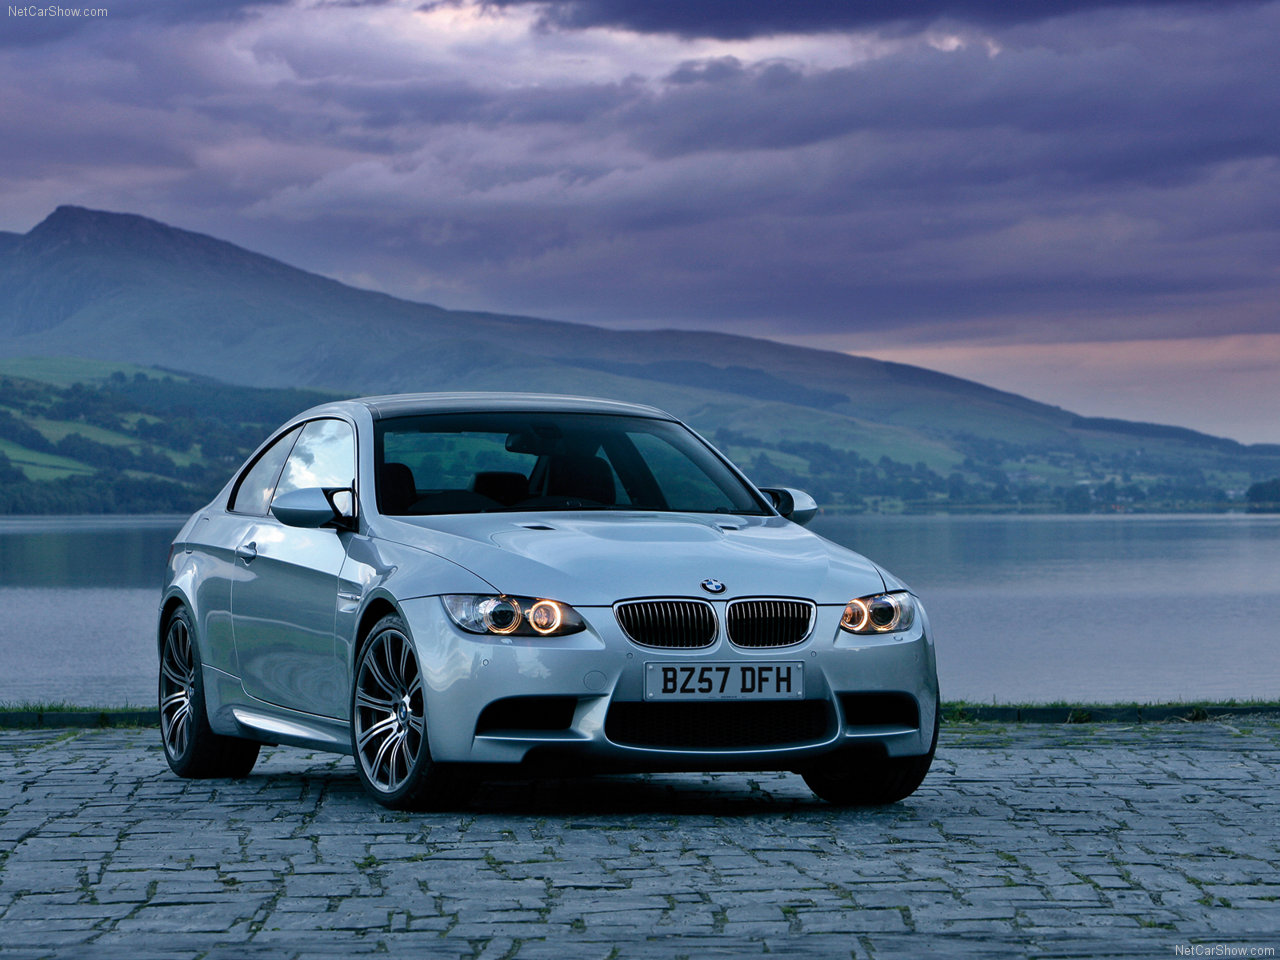 BMW-M3_Coupe_UK_Version_2008_1280x960.jpg